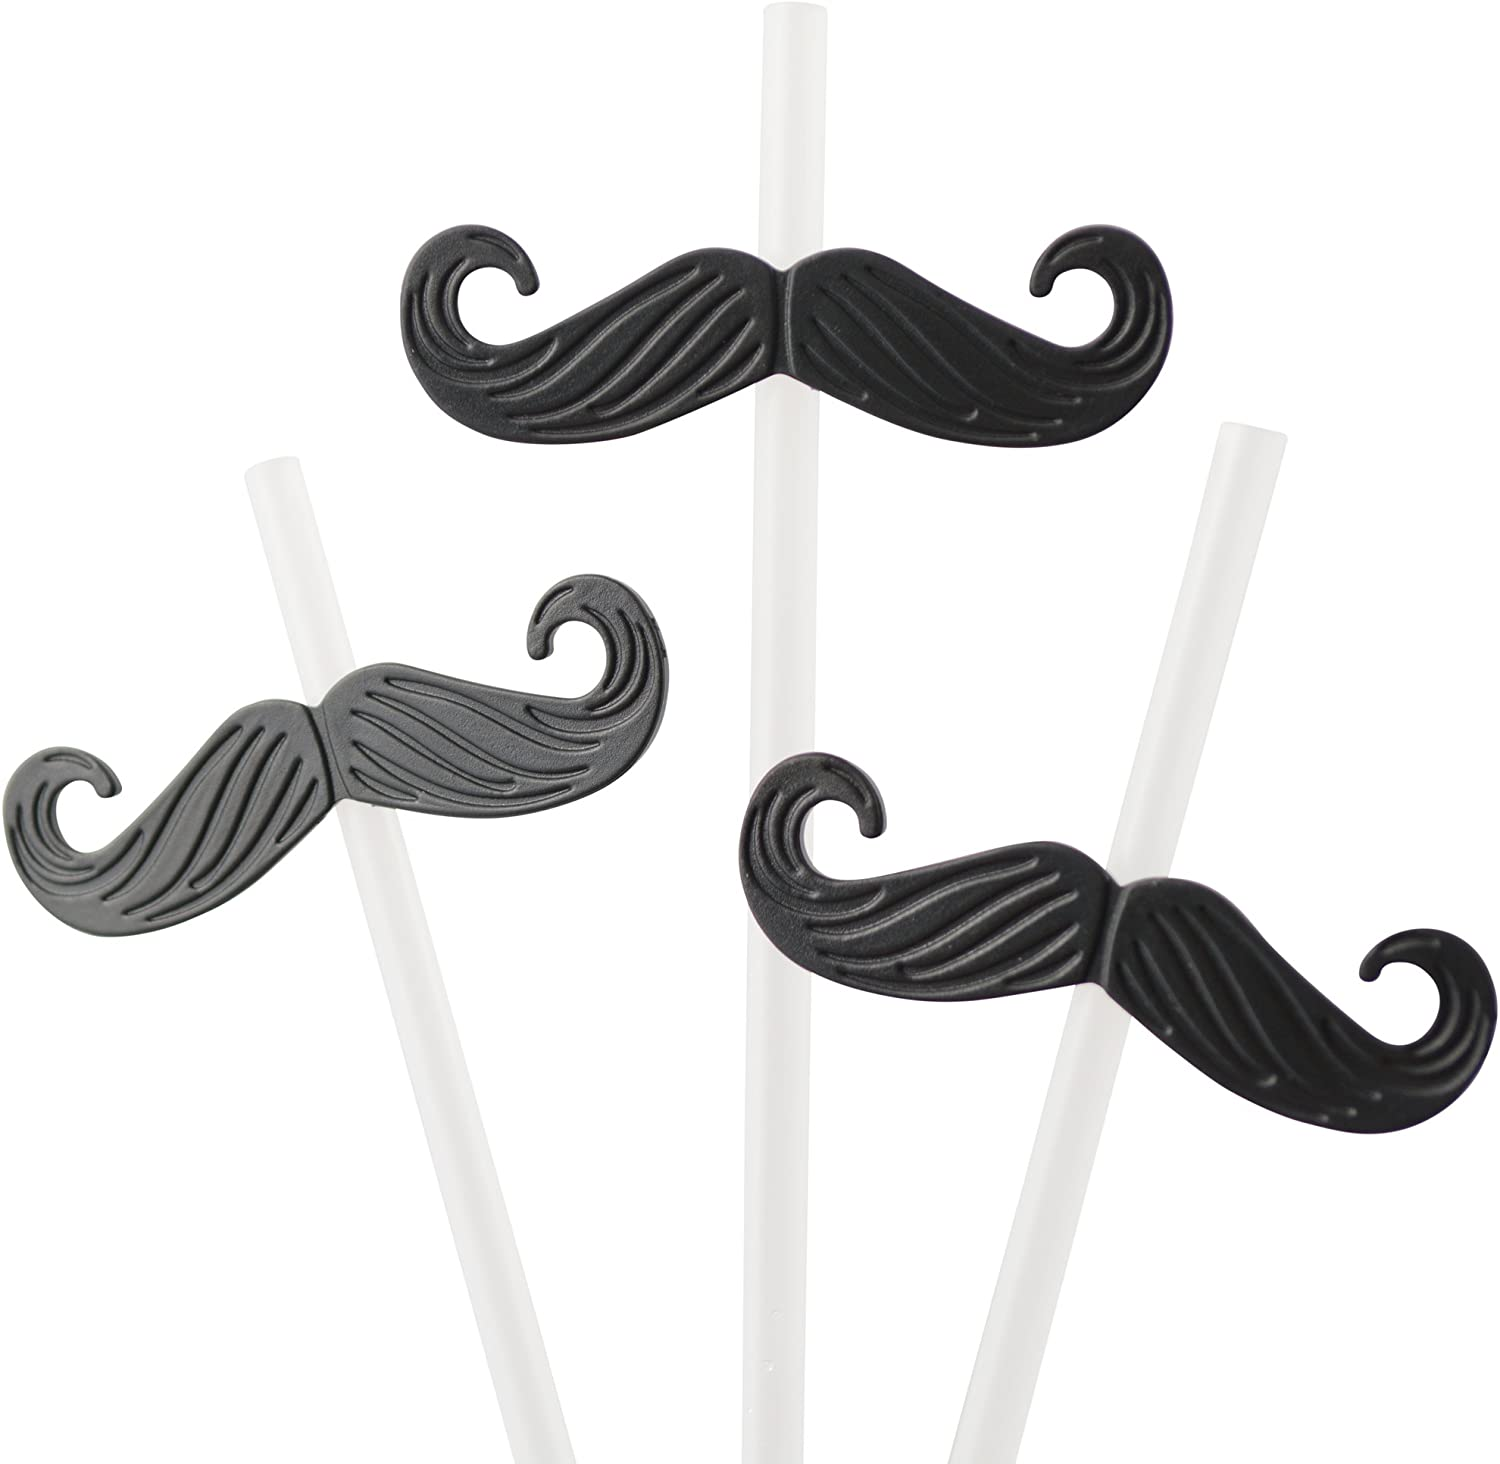 Flexi-Bend Plastic Clip On MOUSTACHE Drinking STRAWS x 5 Perfect for Parties